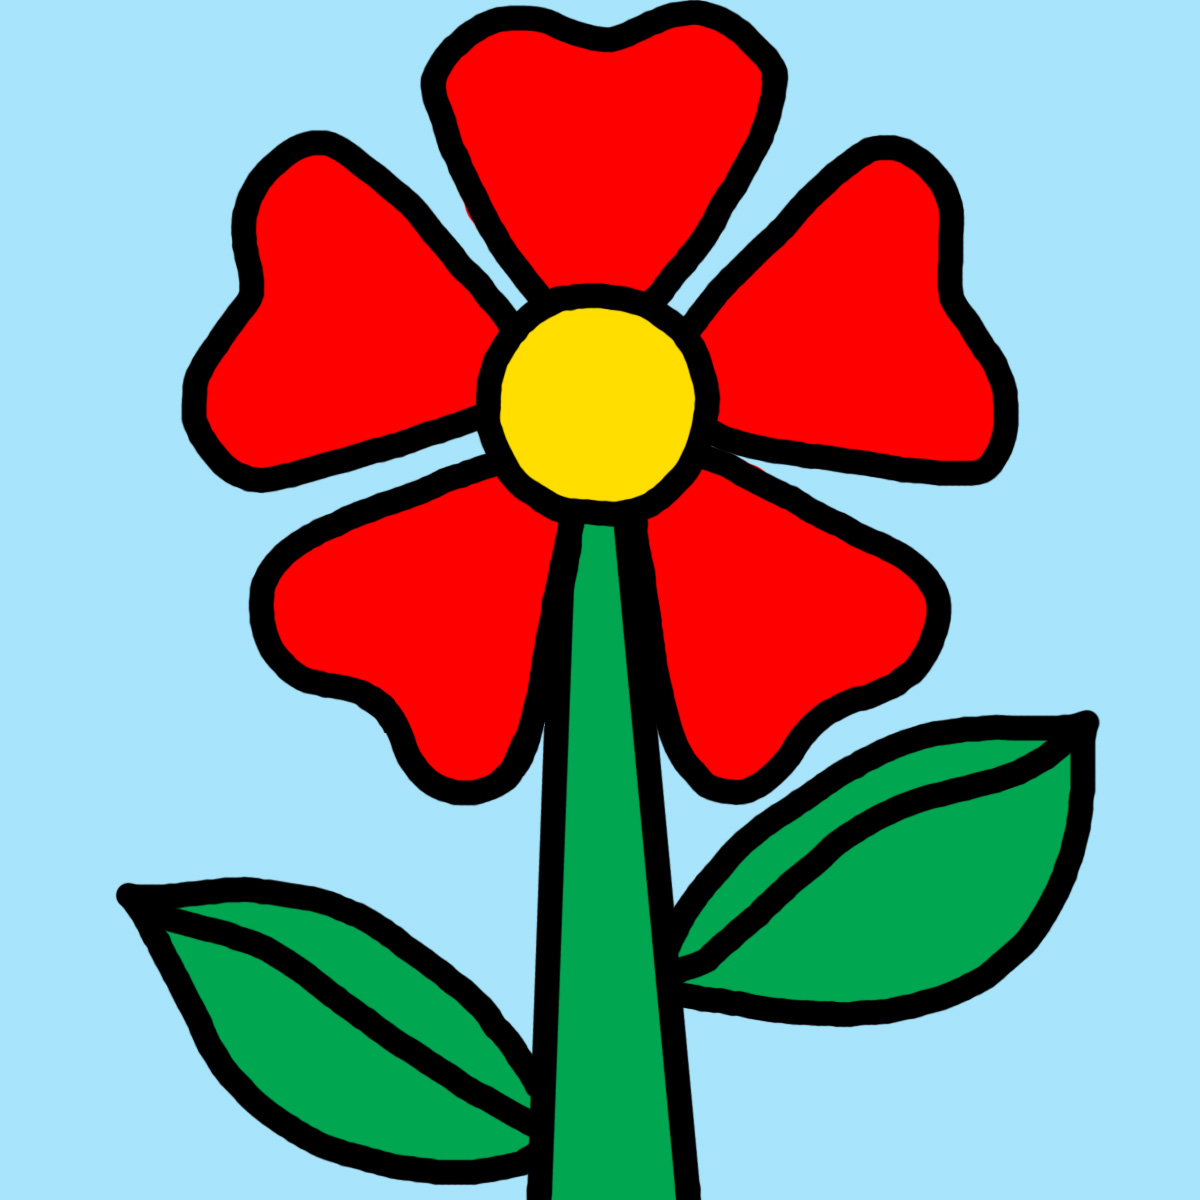 Spring Flower Clipart | Clipart Panda - Free Clipart Images